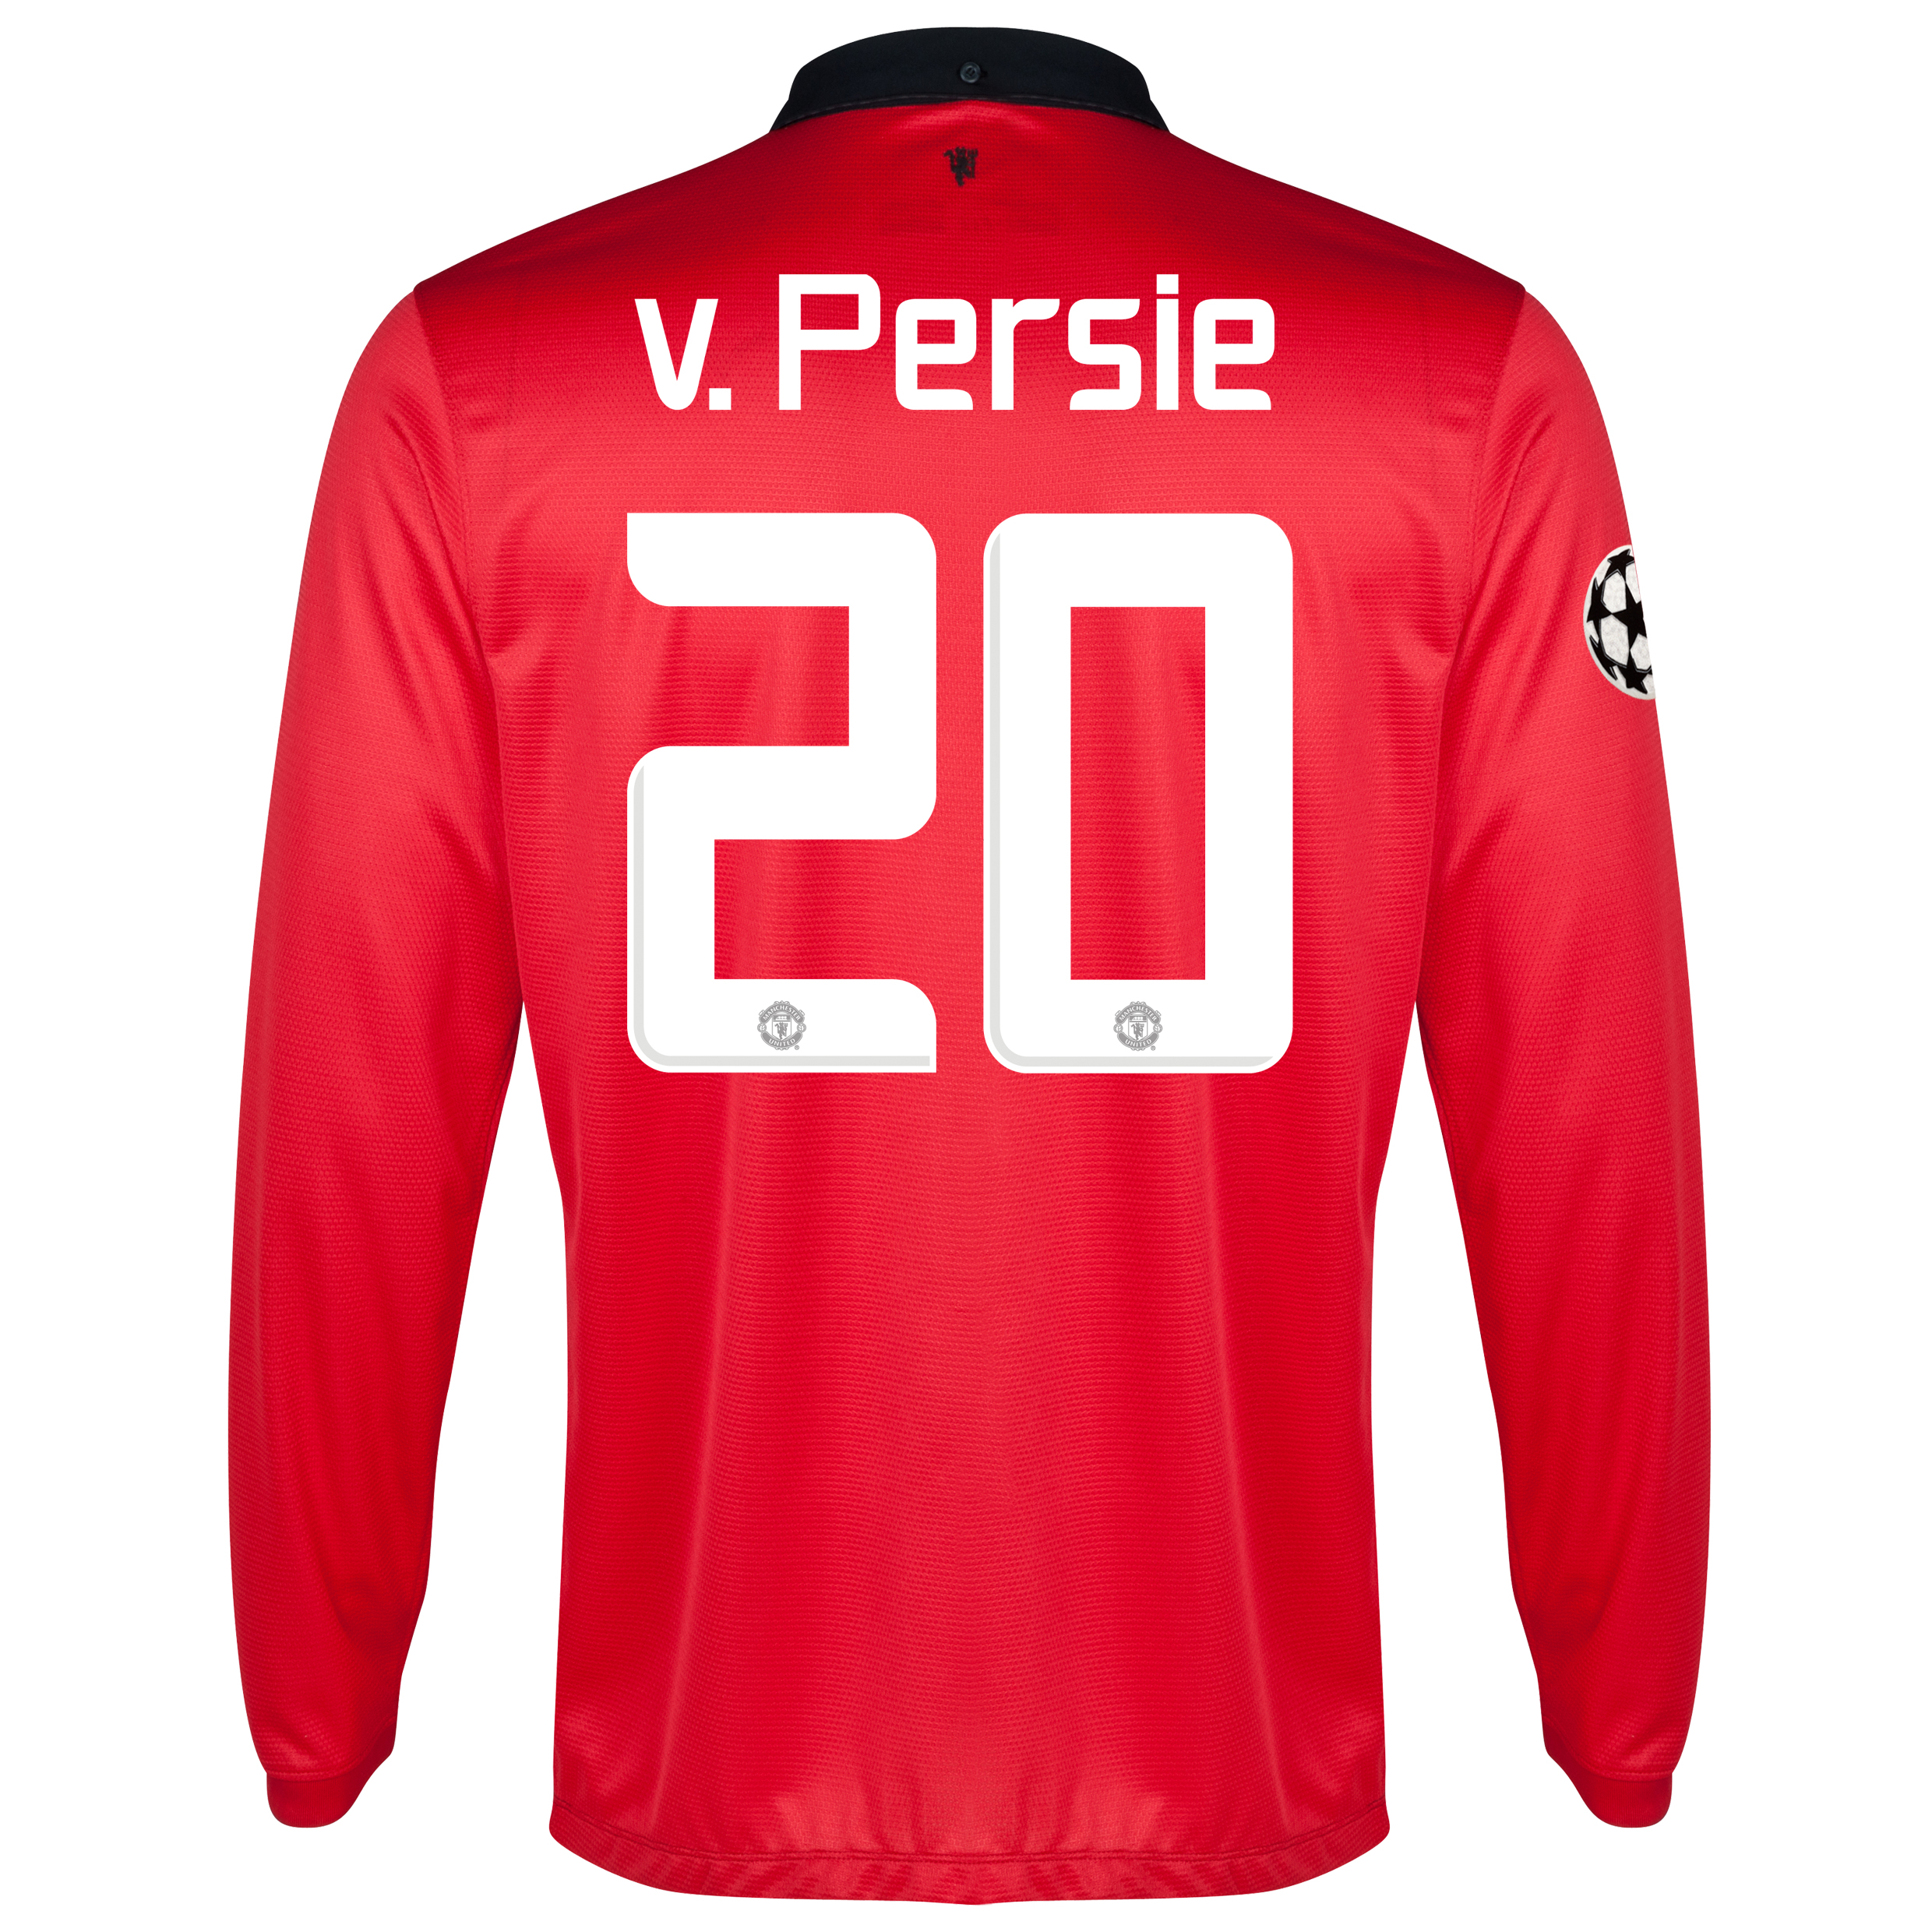 Manchester United UEFA Champions League Home Shirt 2013/14 - Long Sleeved - Kids with v.Persie 20 printing